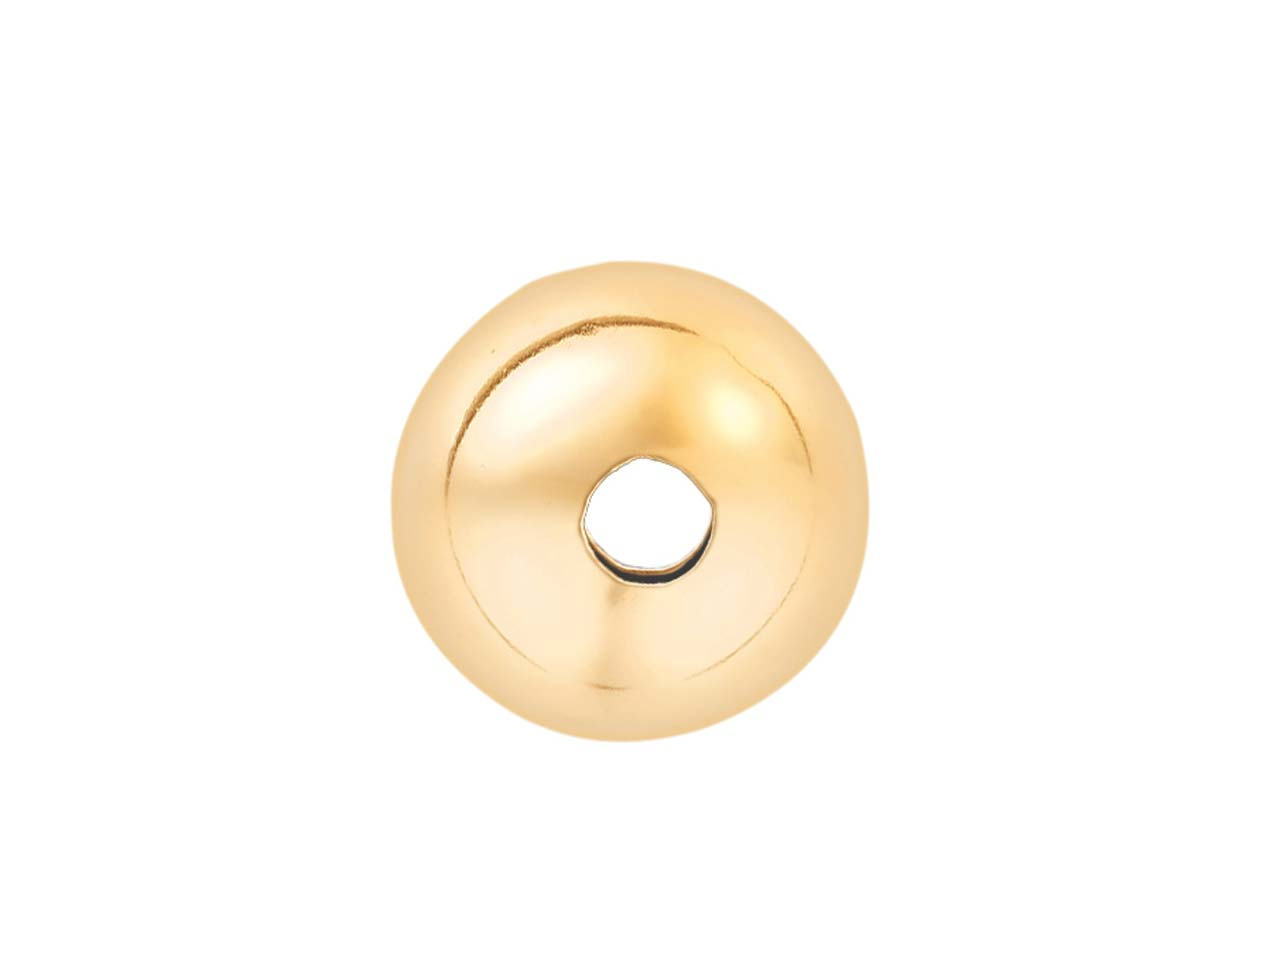 18ct Yellow Gold Plain Round 2 Hole Beads 10mm Ultralight